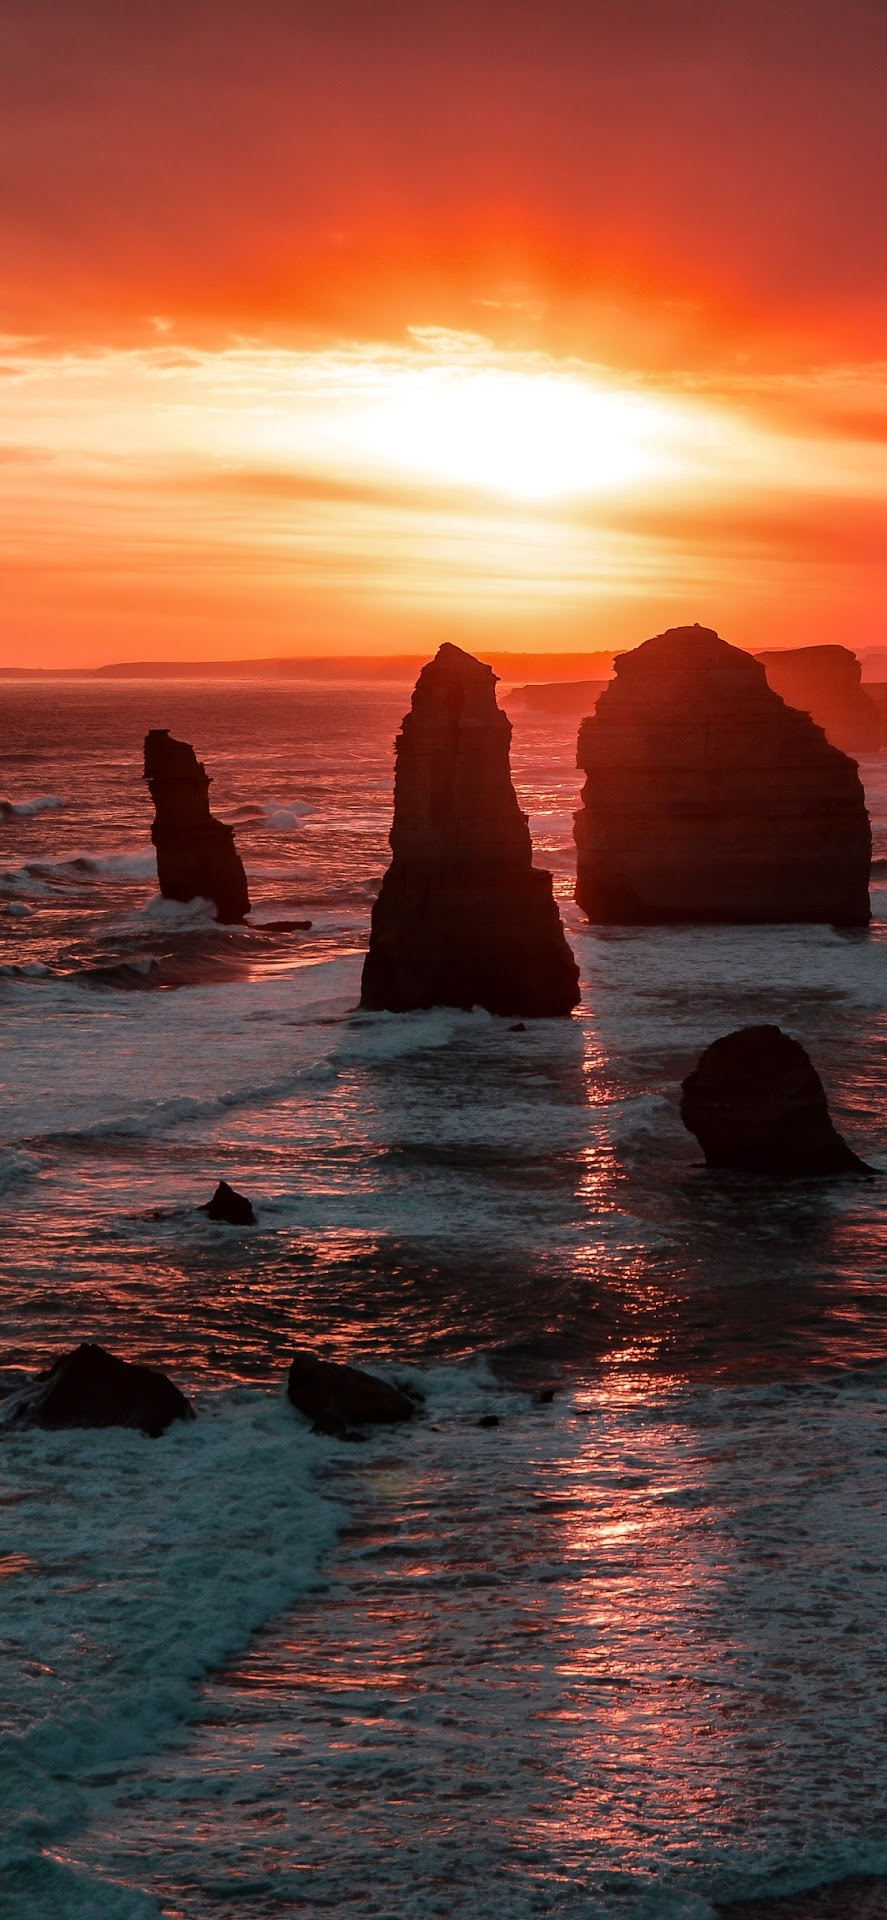 The twelve apostles australia sunset mobile wallpaper